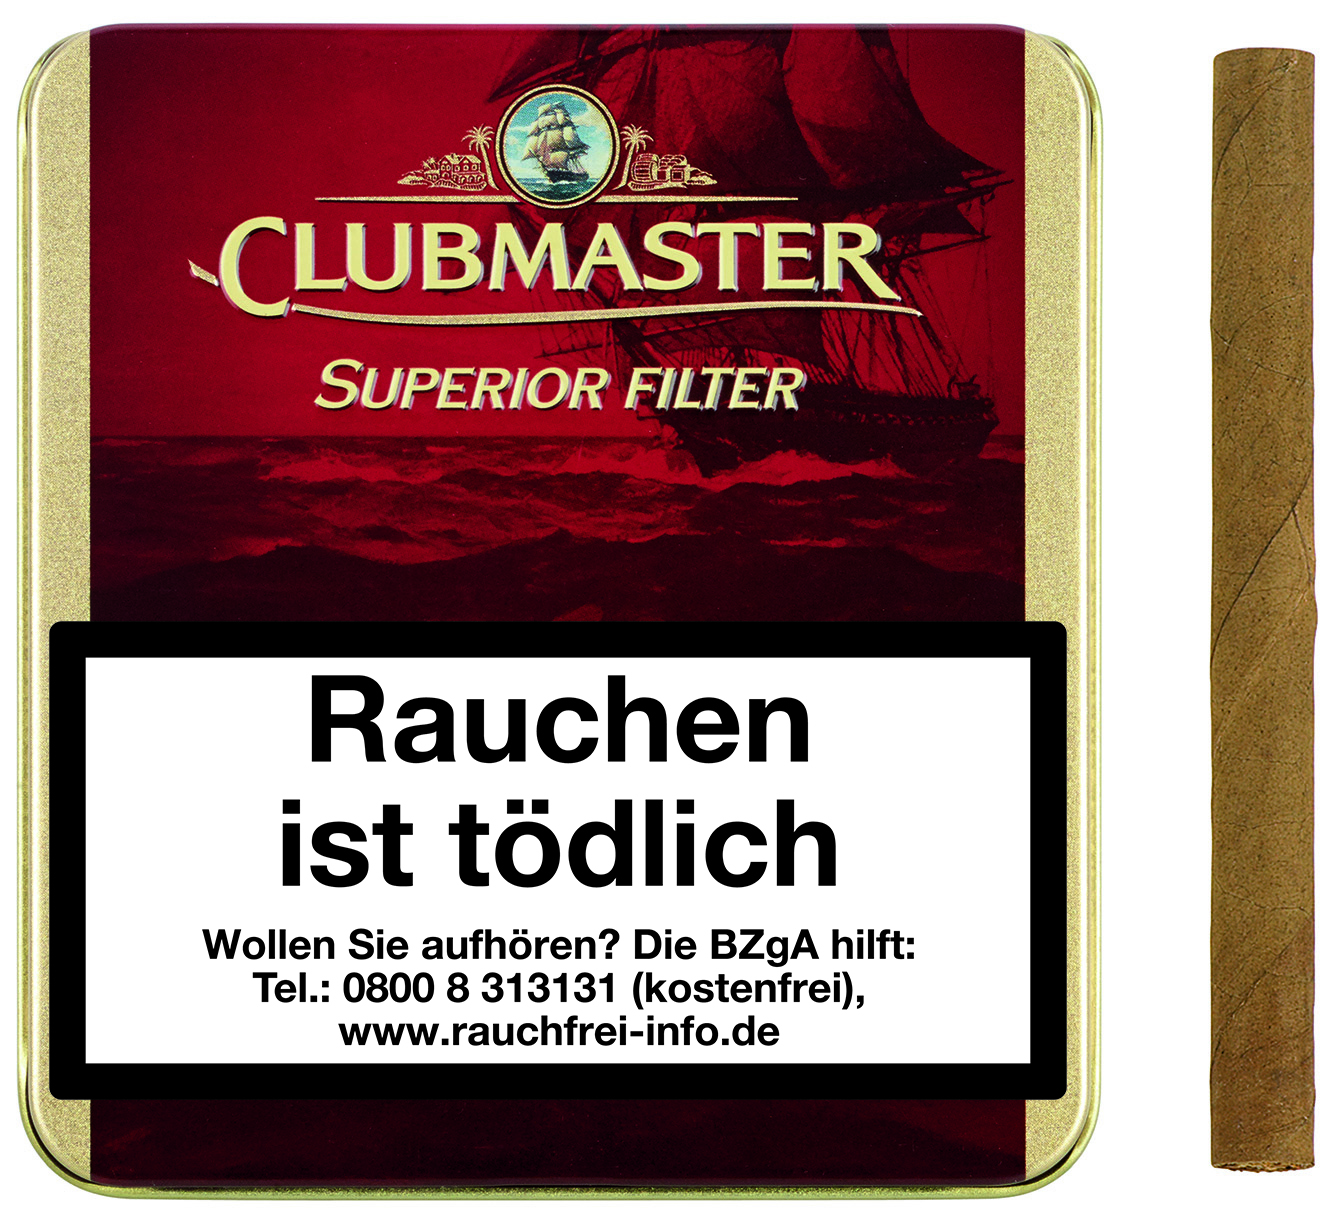 Kauf 24 De Cigarrenversand24 Clubmaster Superior Filter Red Vanilla